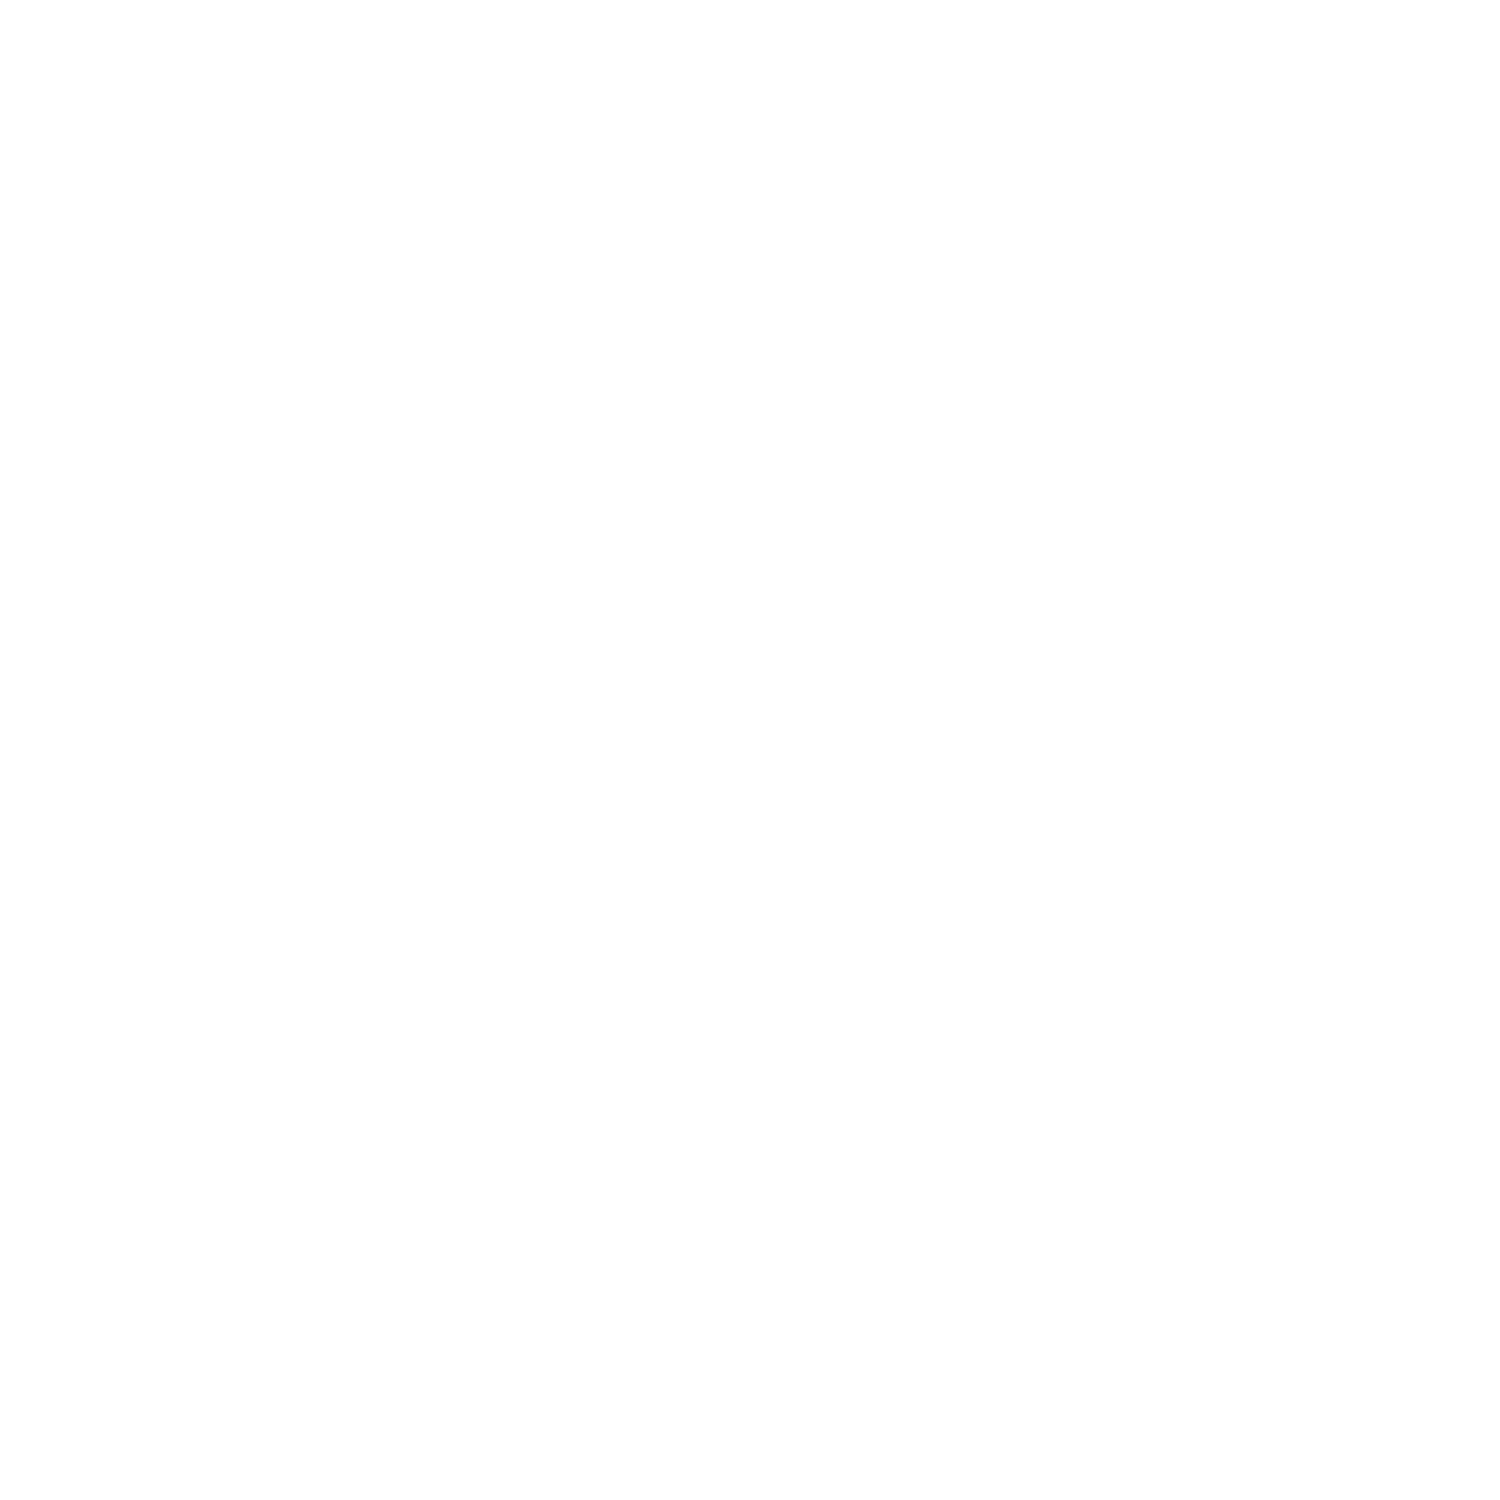 Rainier Recruiting